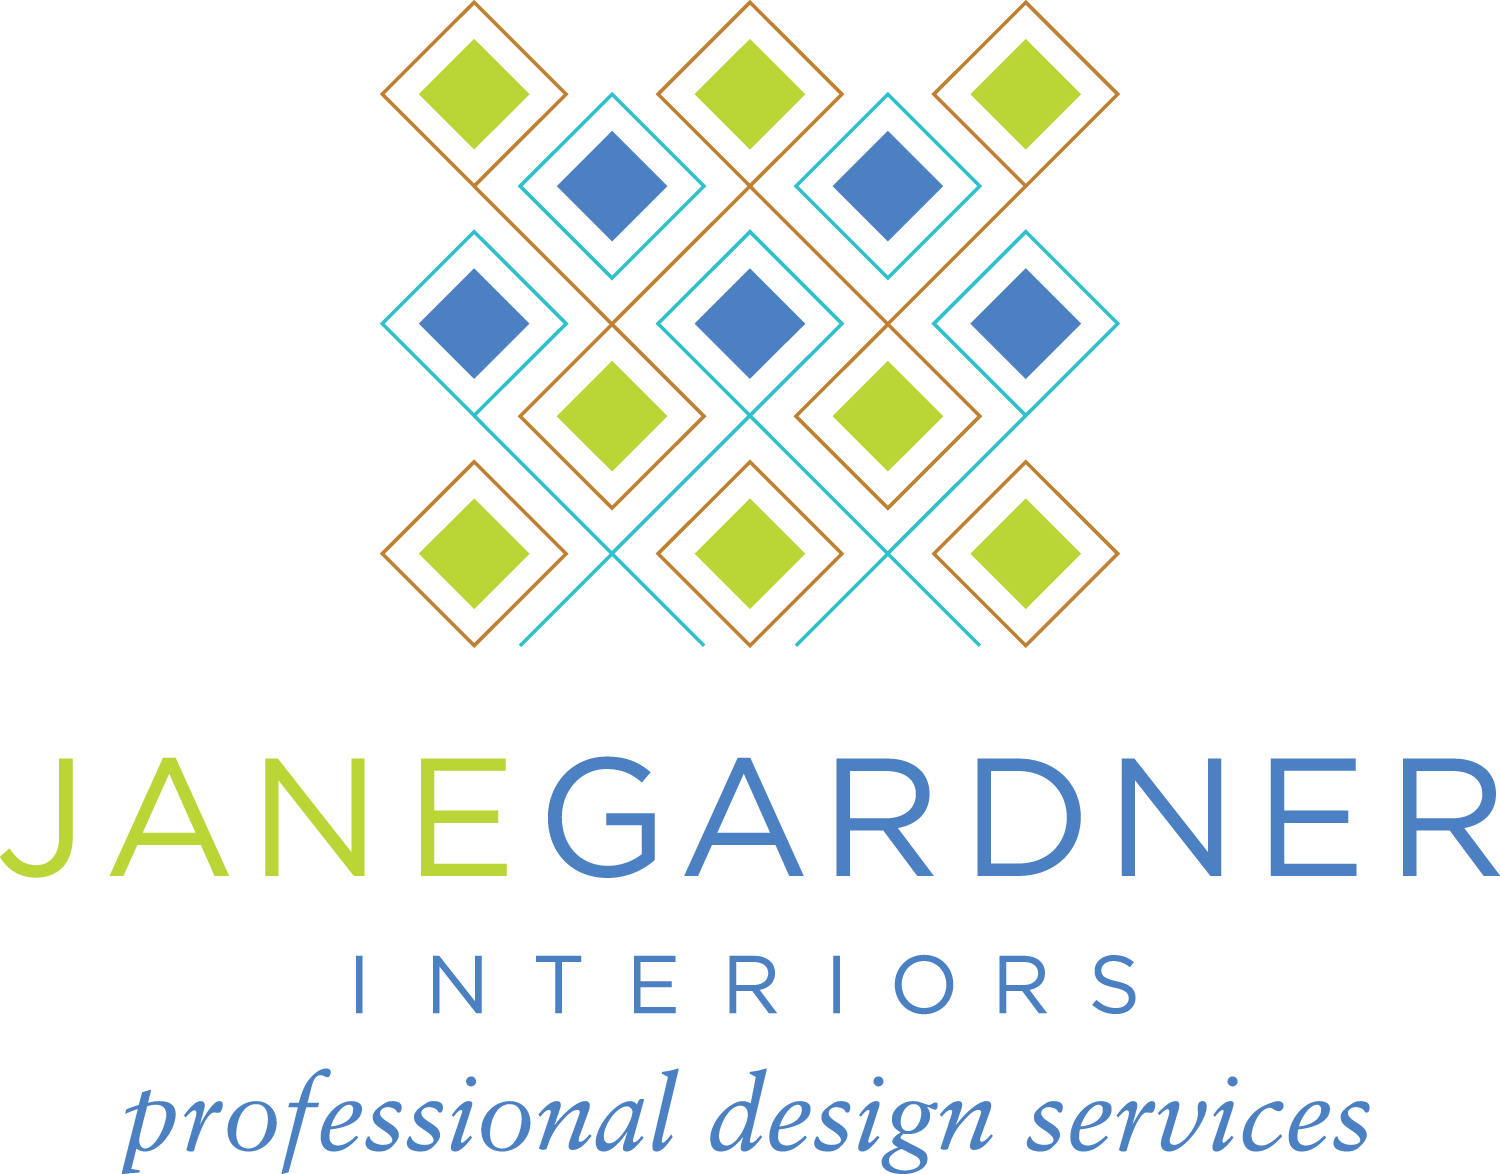 Jane Gardner Interiors